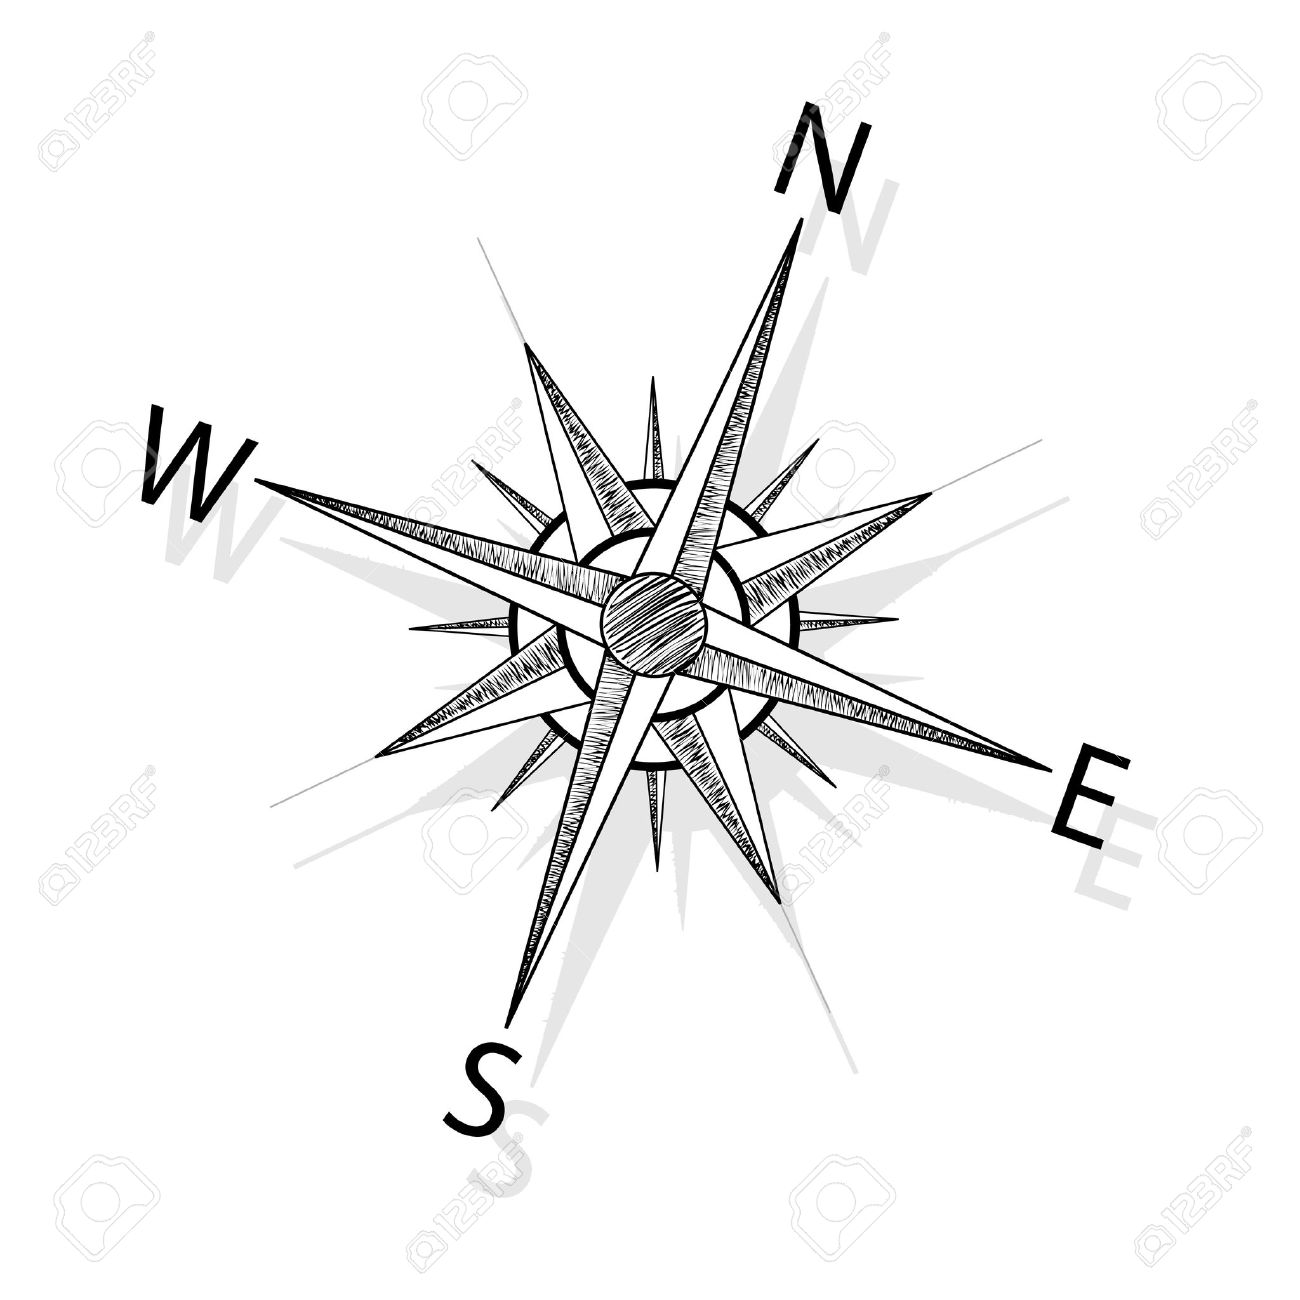 vector compass royalty free cliparts vectors and stock